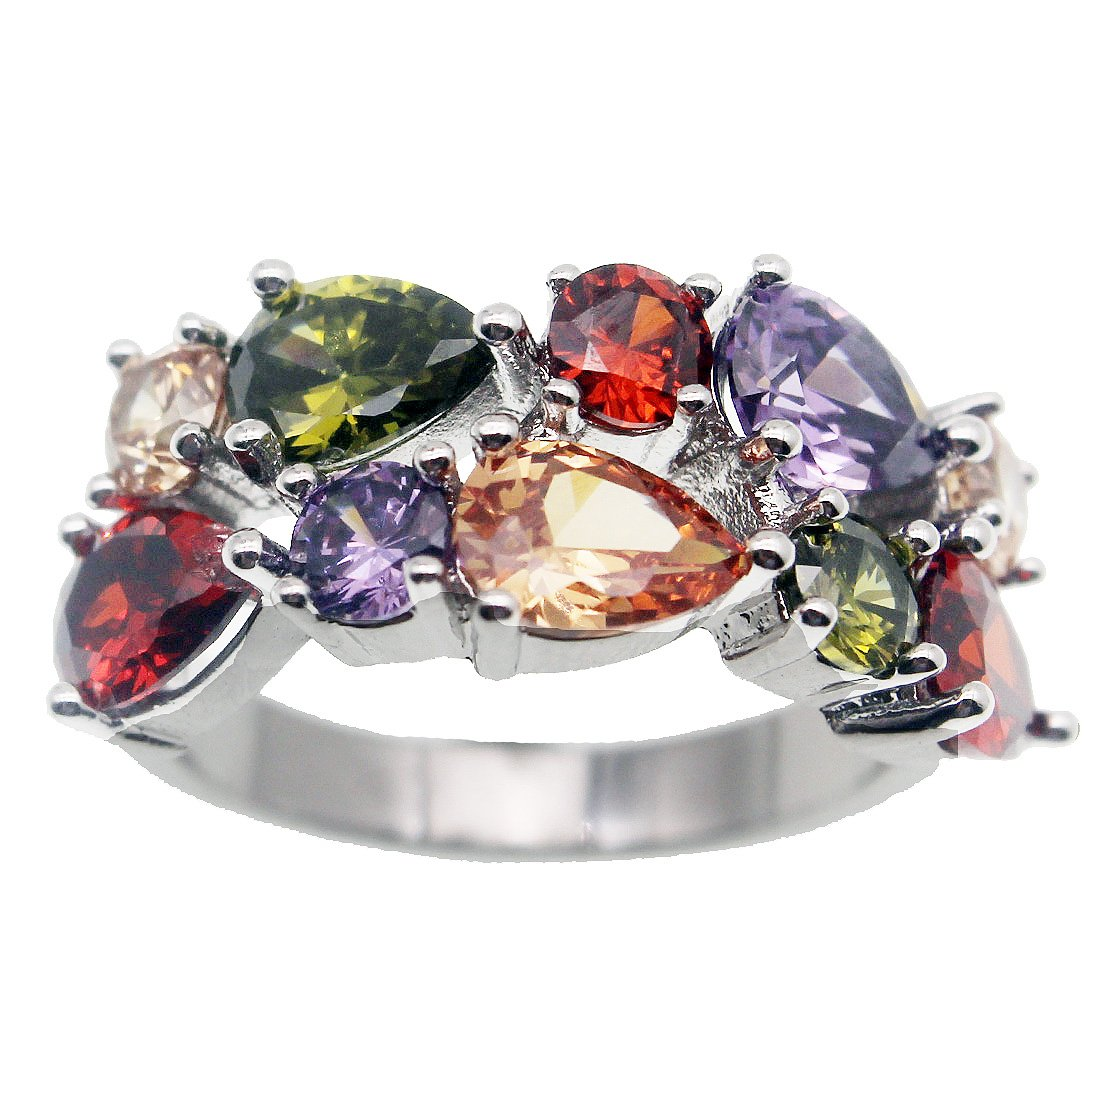 Gemstone Ring Morganite Garnet Amethyst Peridot 925 Silver for women, girl 6 7 8 9 10 hermosa.cc